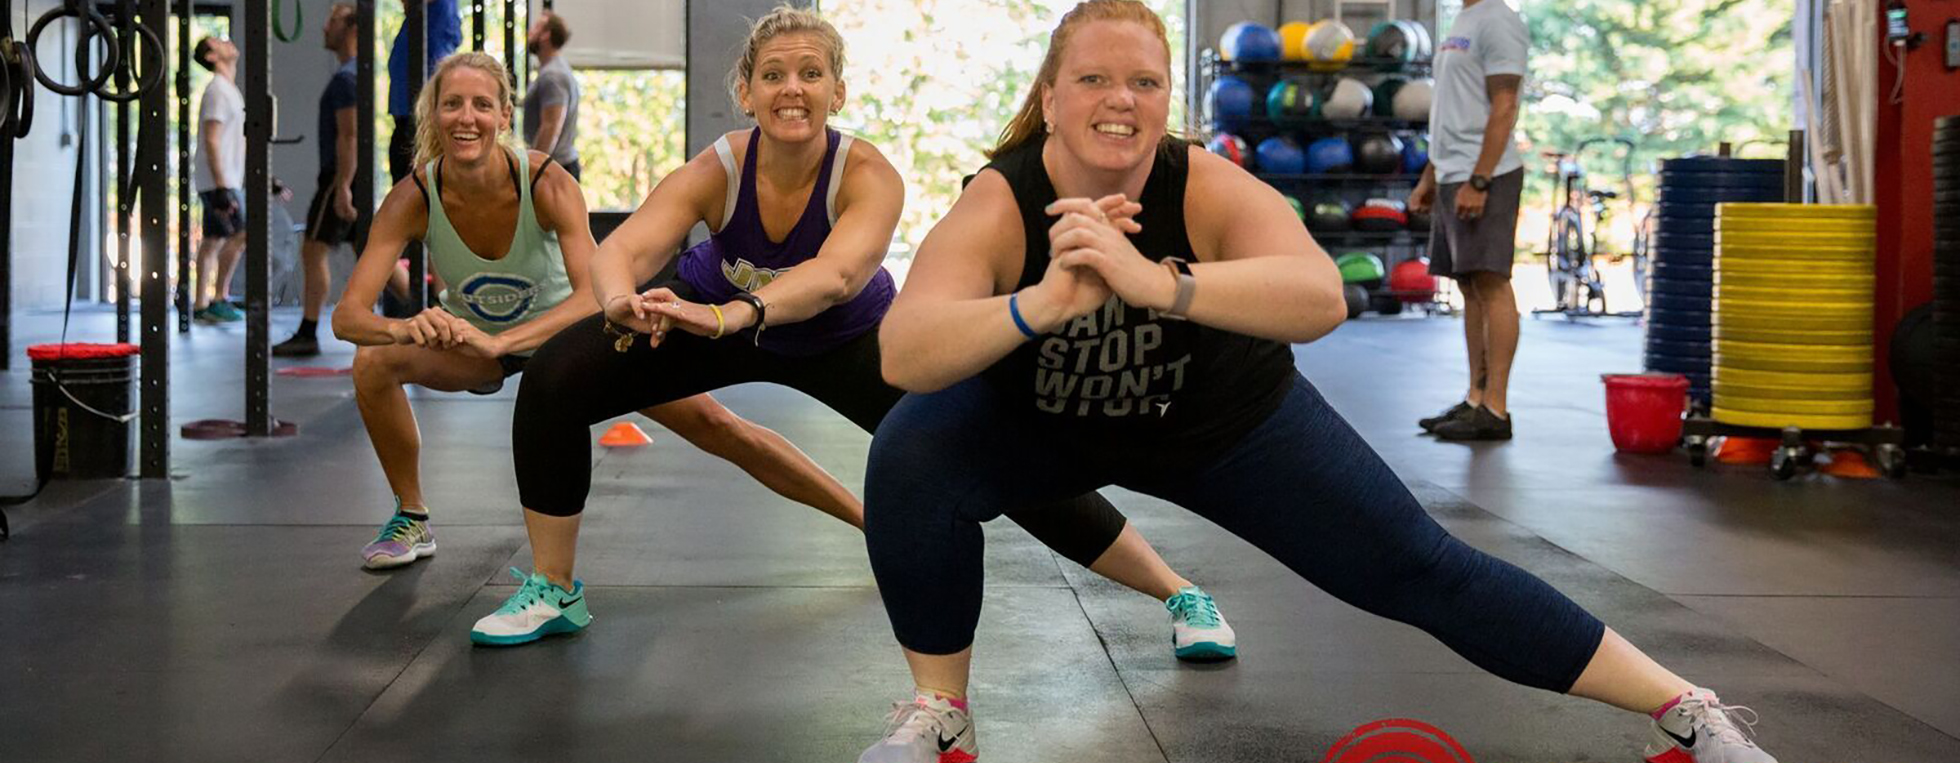 Fitness and Conditioning Classes near Sparks MD, Fitness and Conditioning Classes near Hunt Valley MD, Fitness and Conditioning Classes near Hereford MD, Fitness and Conditioning Classes near Cockeyesville MD, Fitness and Conditioning Classes near North Baltimore MD